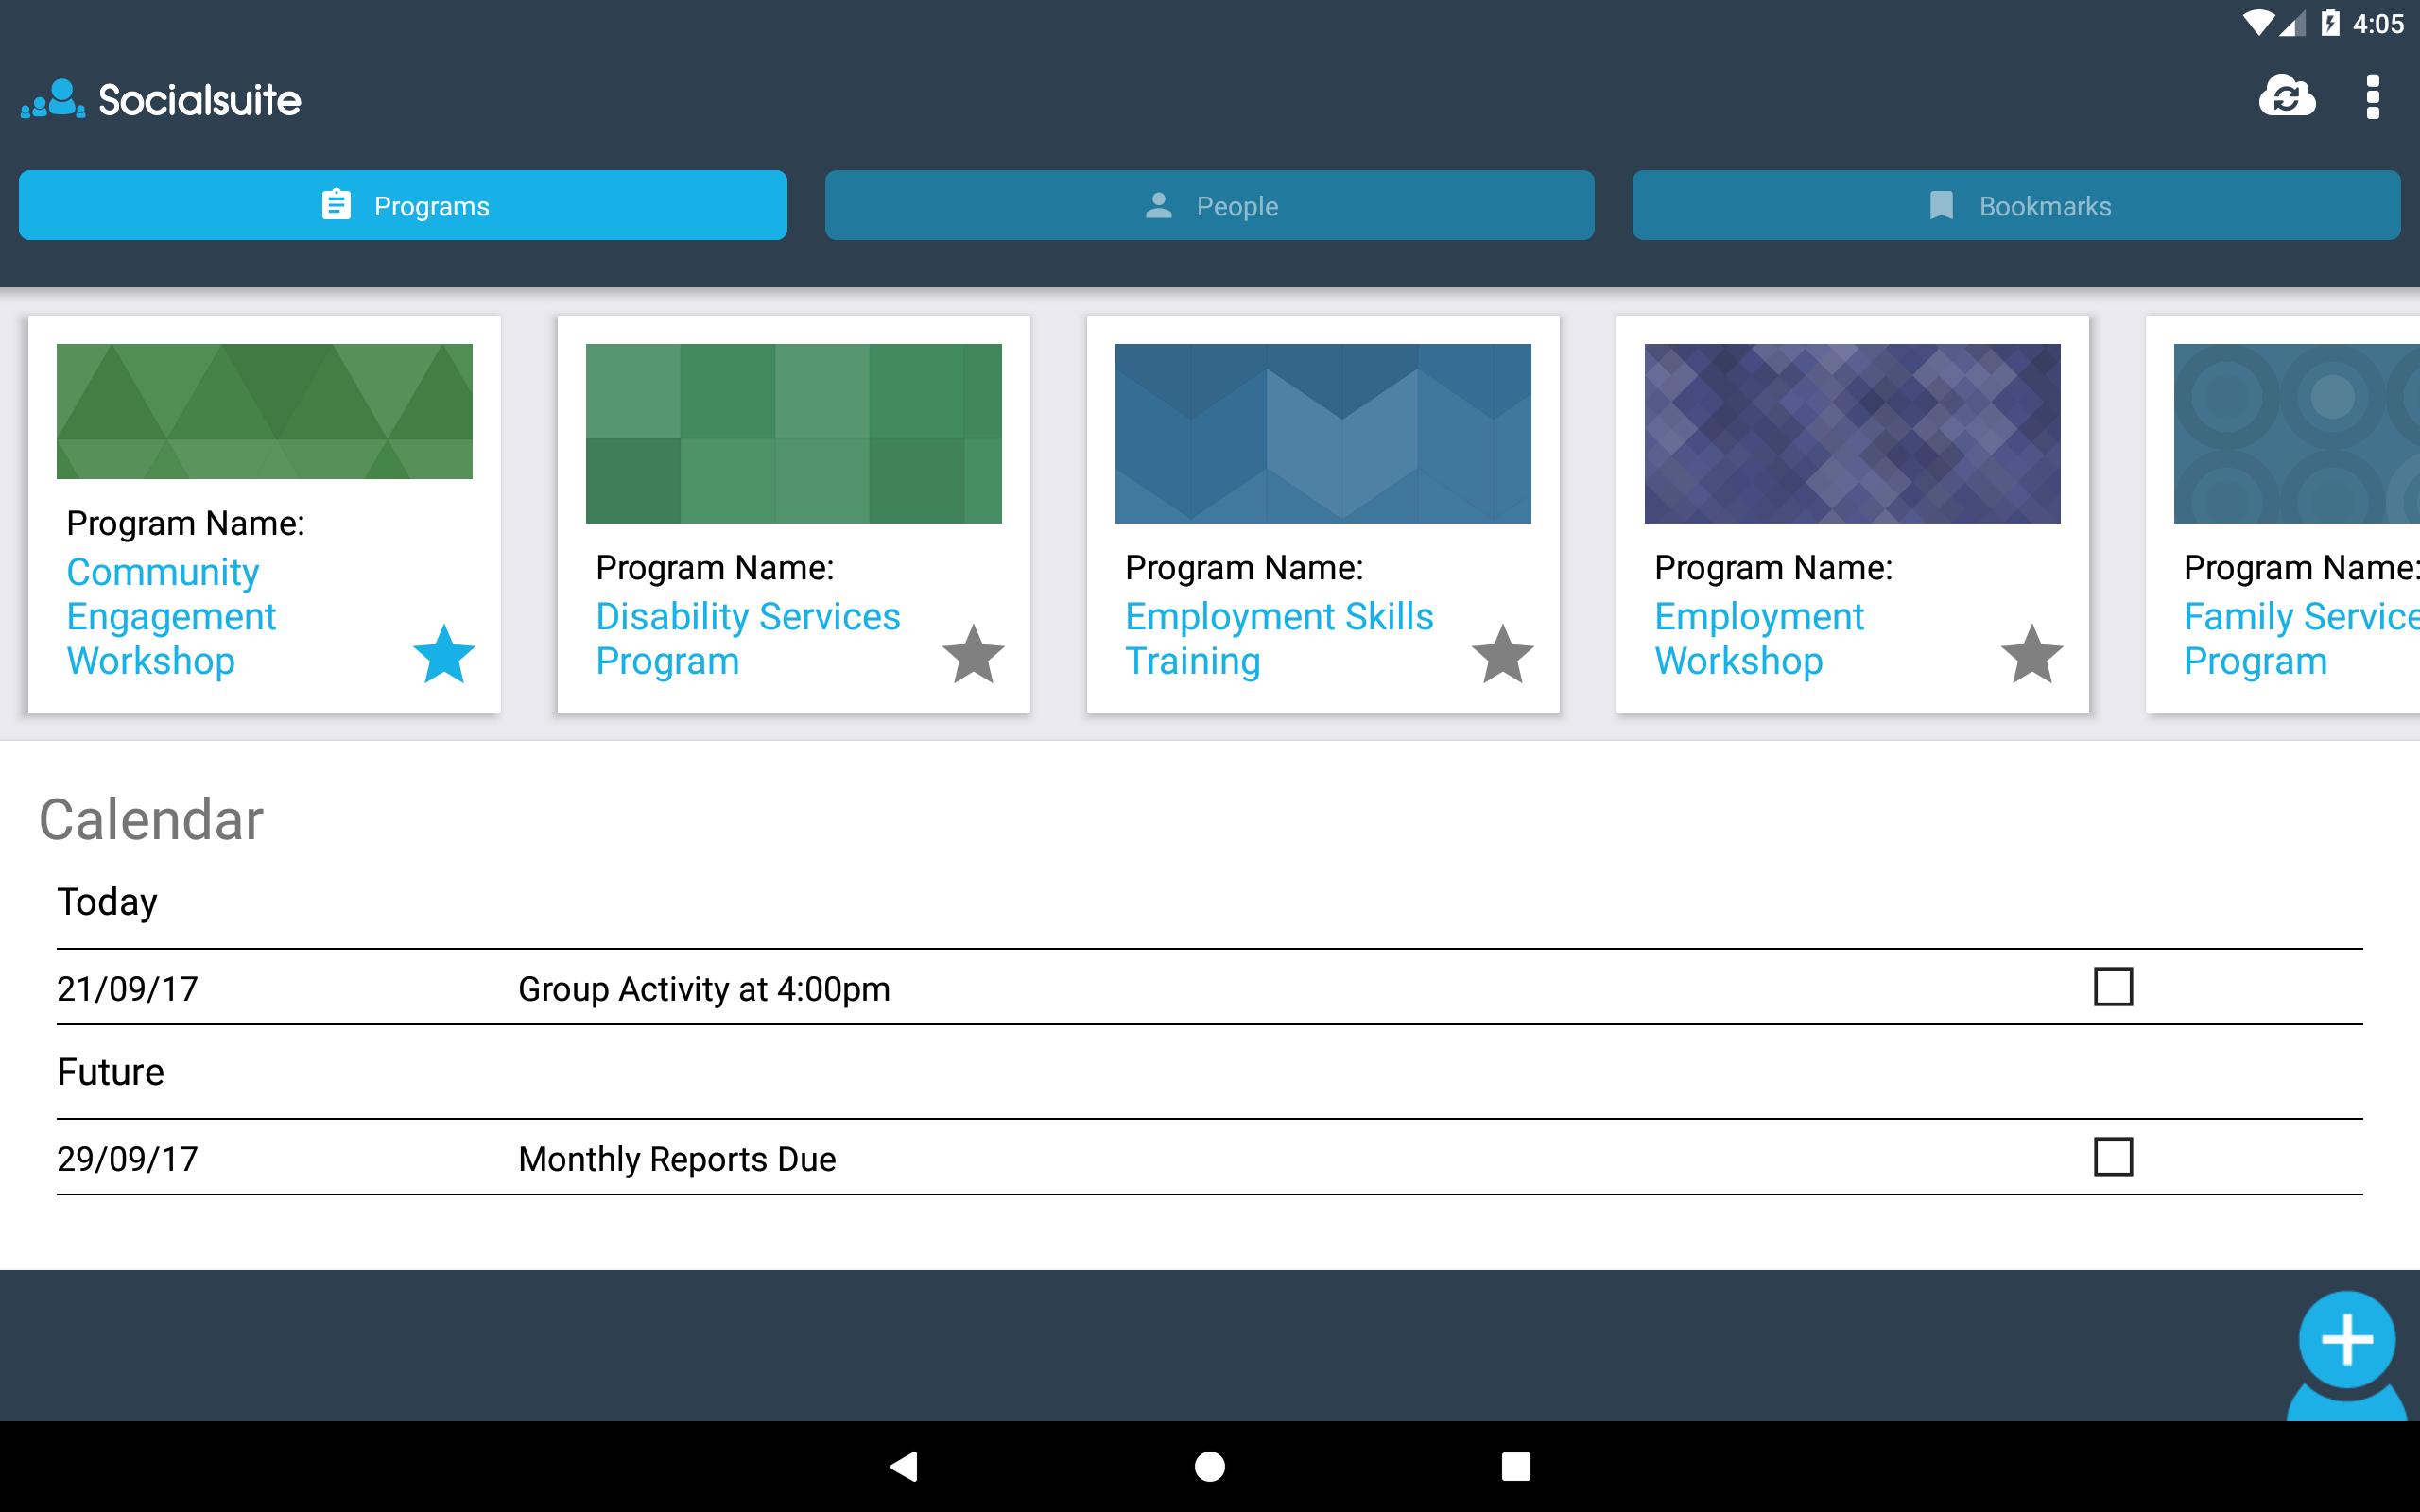 Manage programs within the Socialsuite app and refine them over time as new insights are gathered